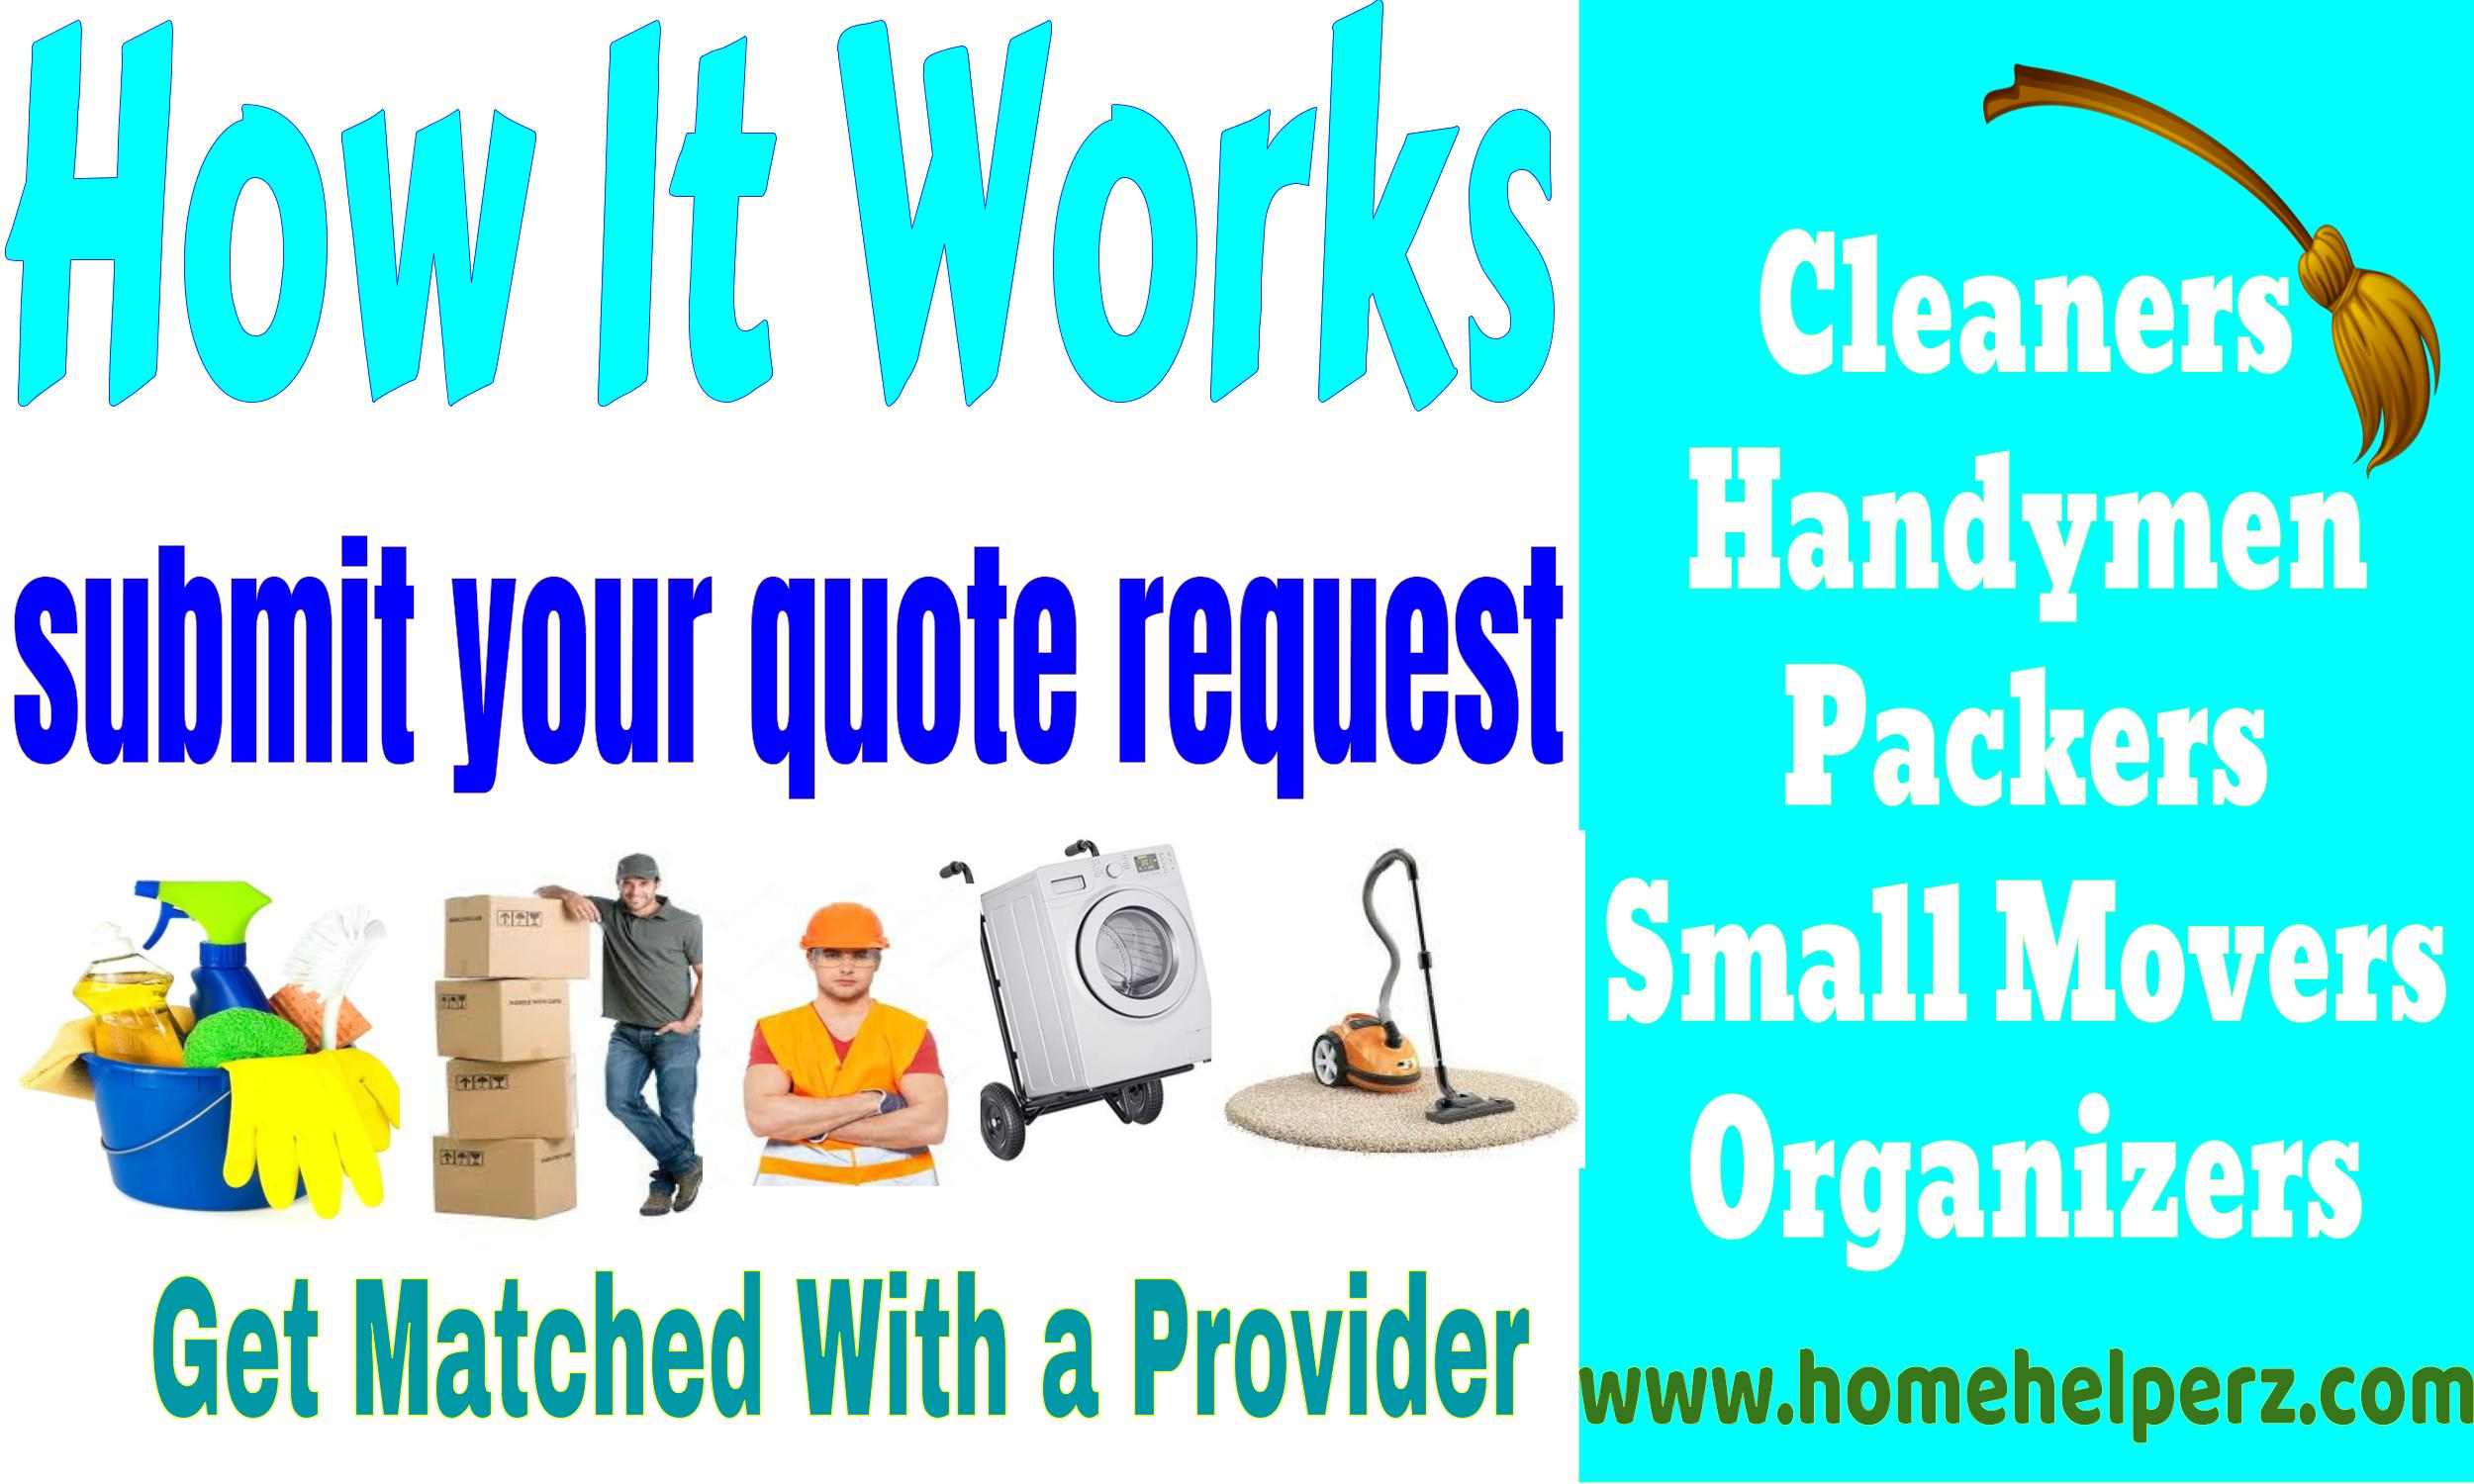 Tell Home Helperz how much you want to pay to have your home cleaned or organized.